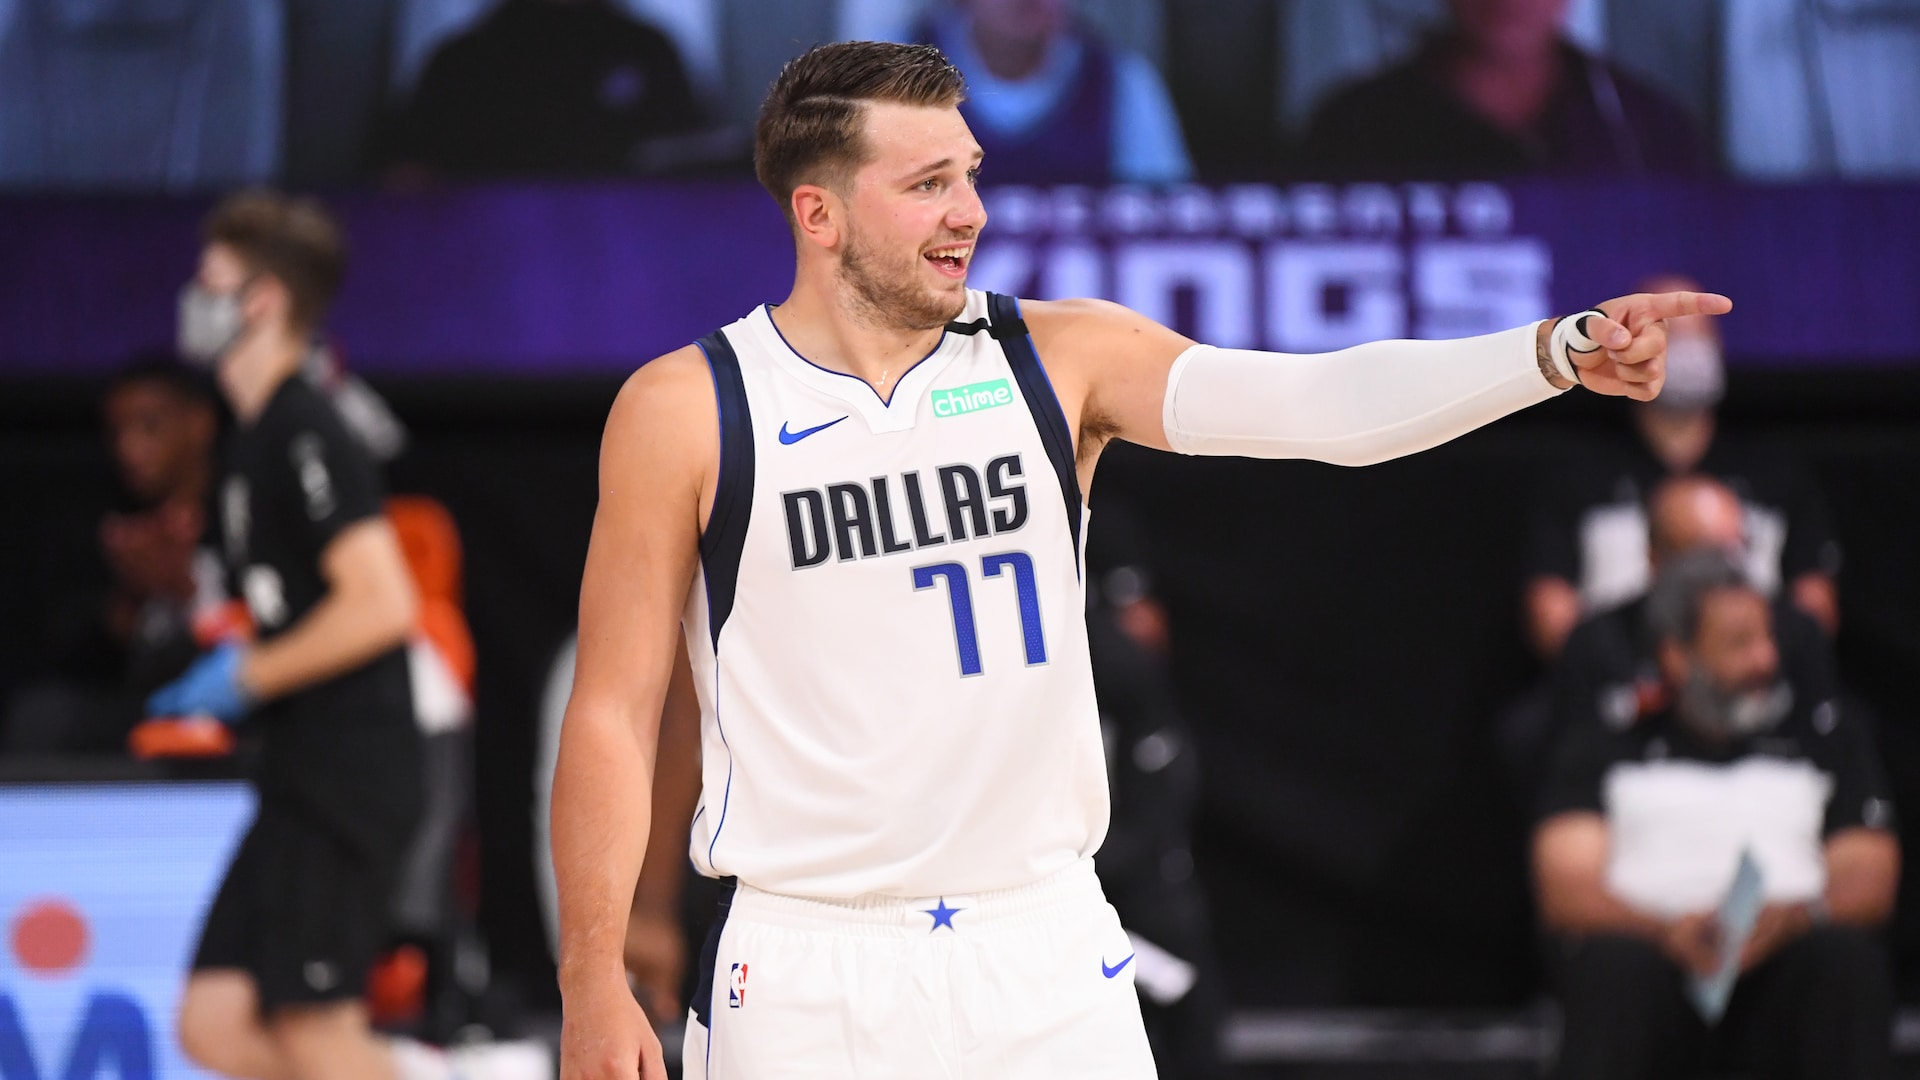 Mavericks' Luka Doncic set to begin his first NBA playoff run